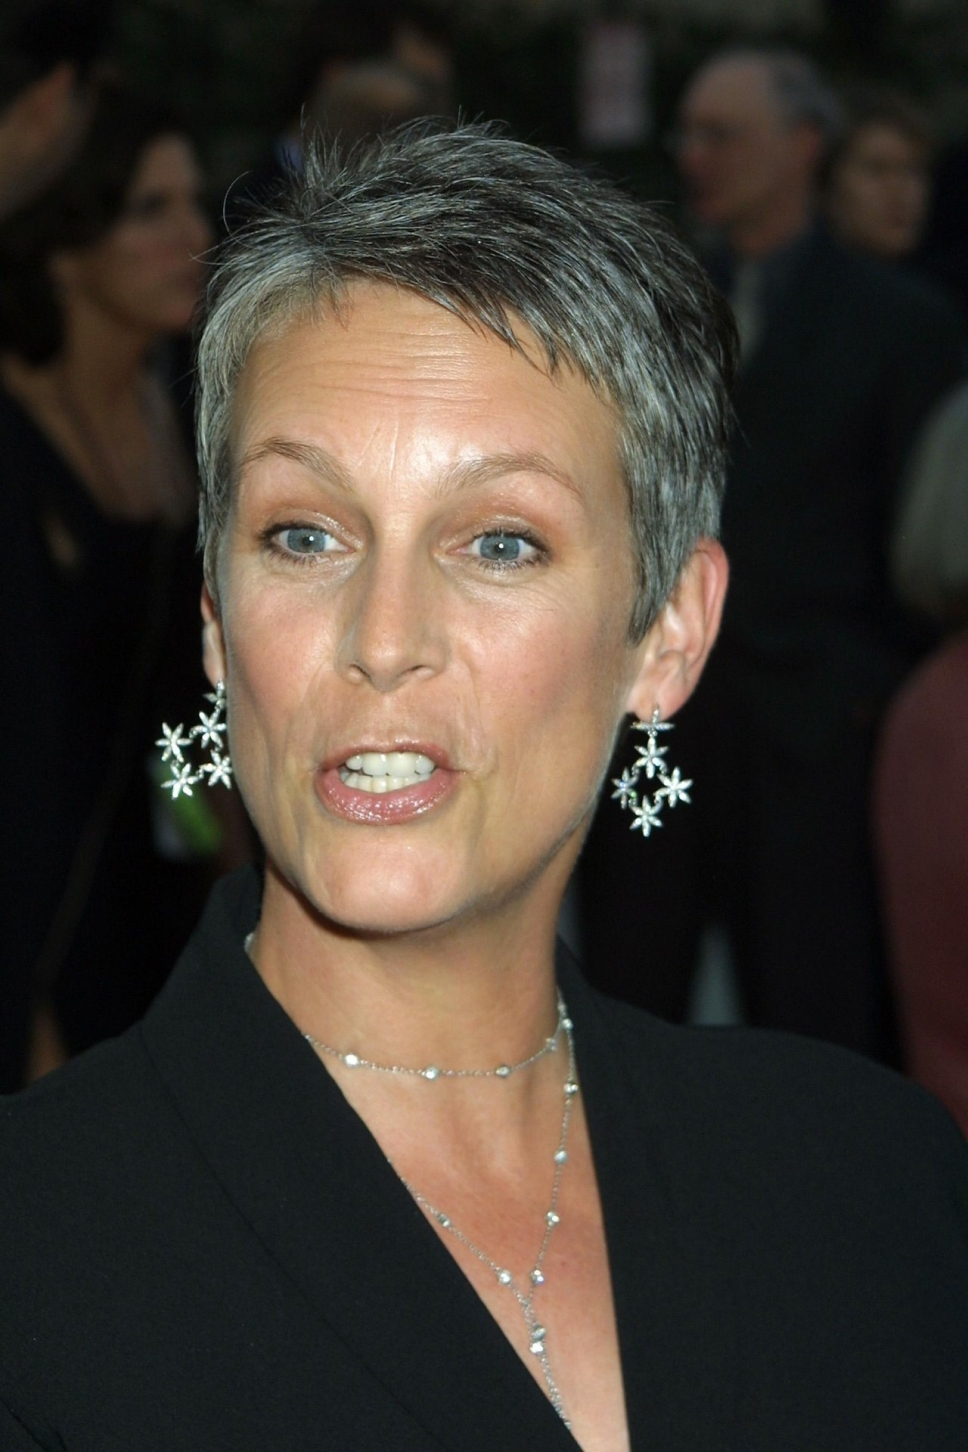 Rumor Actress Jamie Lee Curtis was born with both male and female sex organs